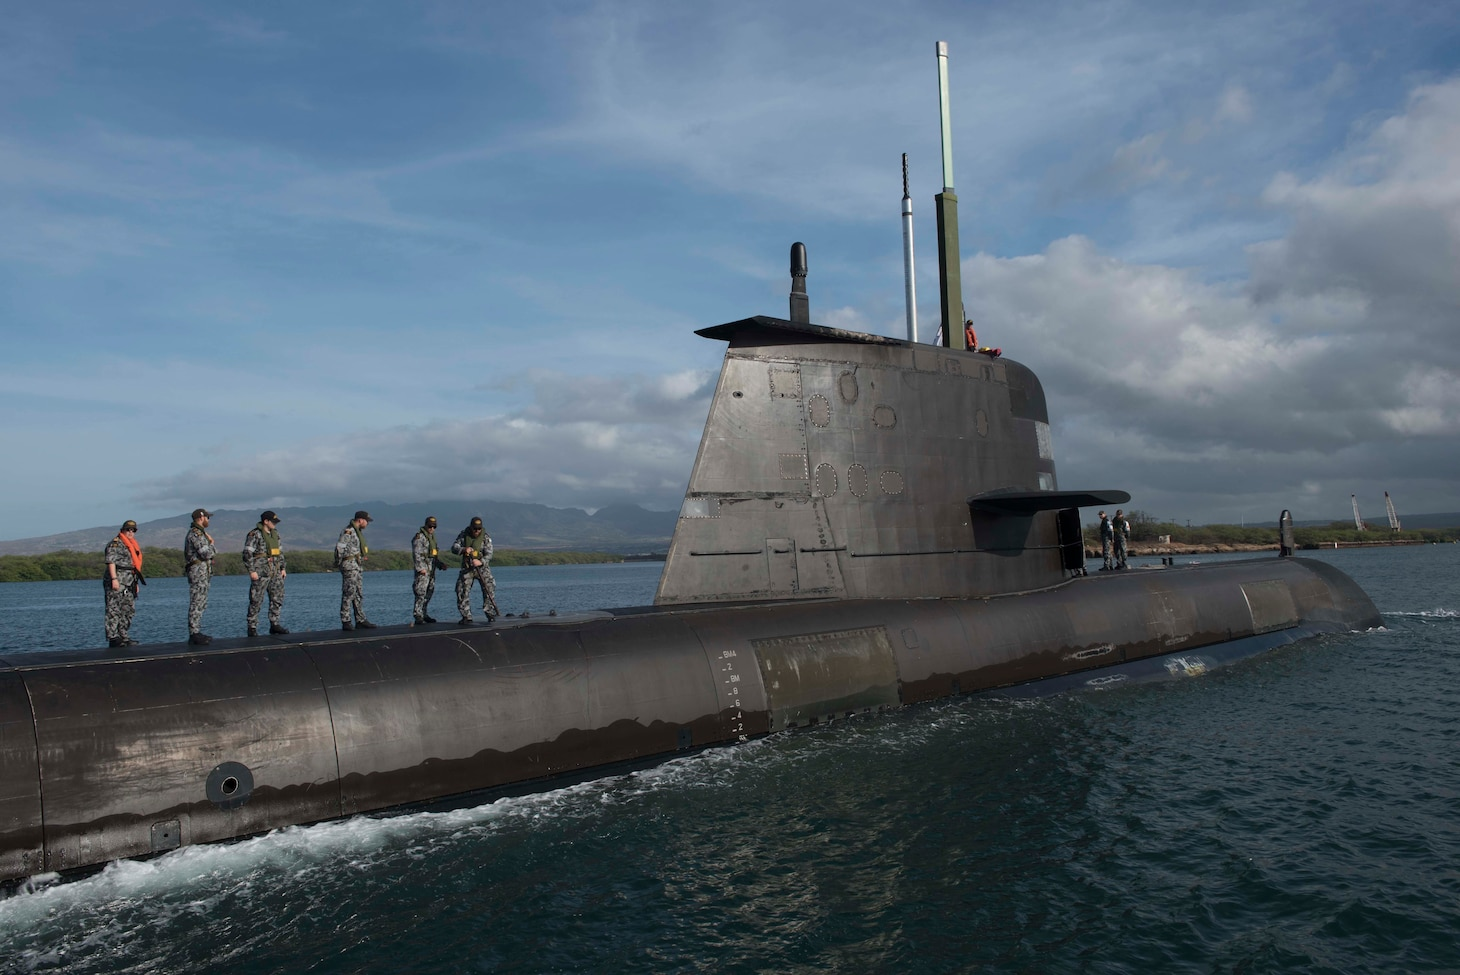 The crew of the Royal Australian Navy submarine HMAS Rankin stand on top of submarine while in the water.